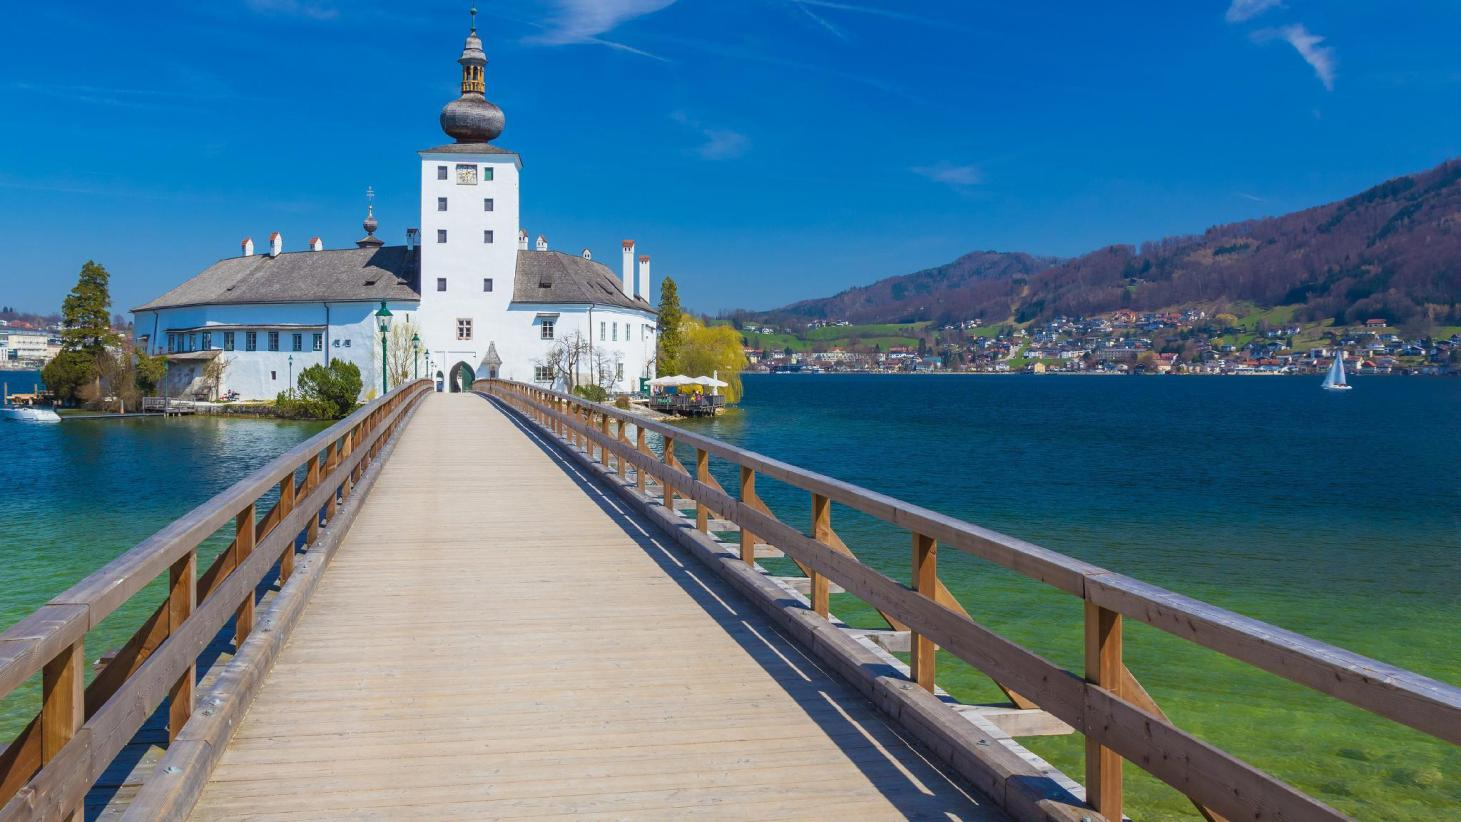 10 Best Gmunden Hotels: HD Photos + Reviews of Hotels in